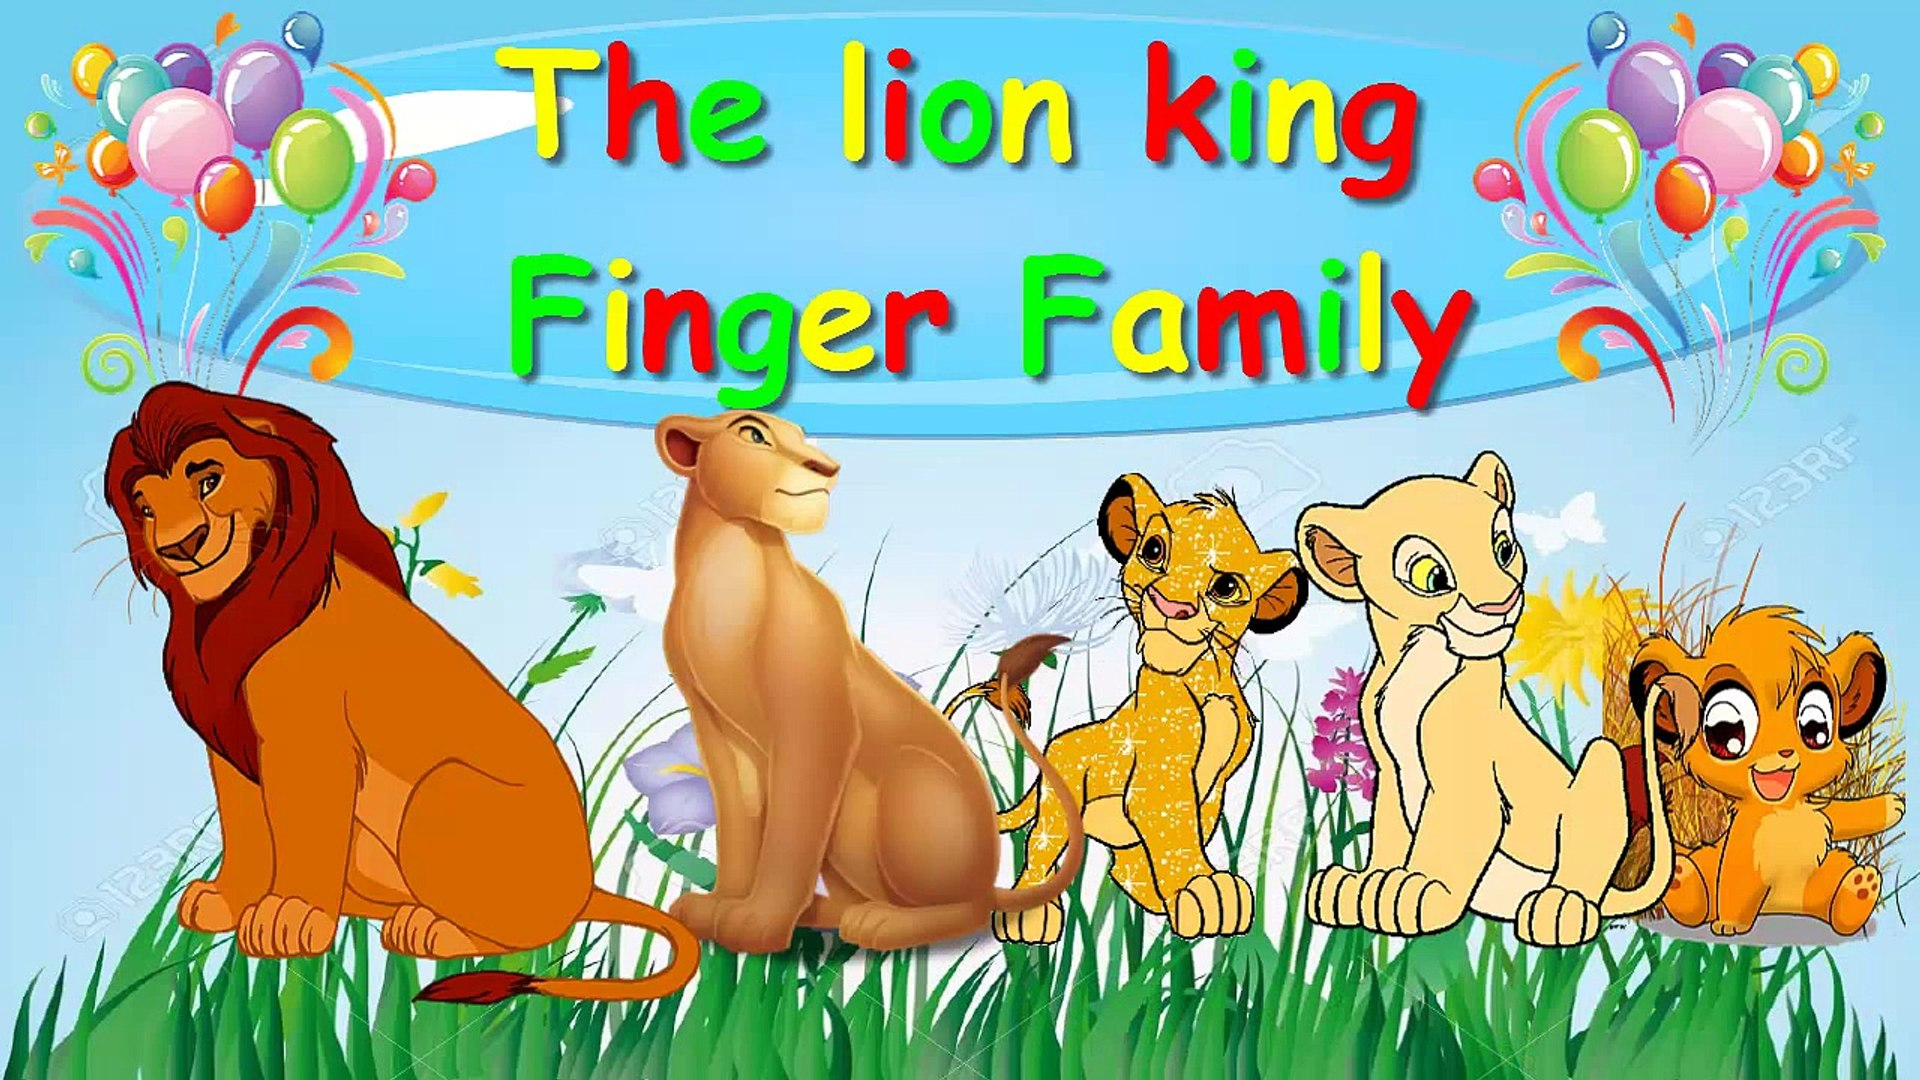 The Lion King Finger Family Song Balloon Finger Family Fun Toy Parody